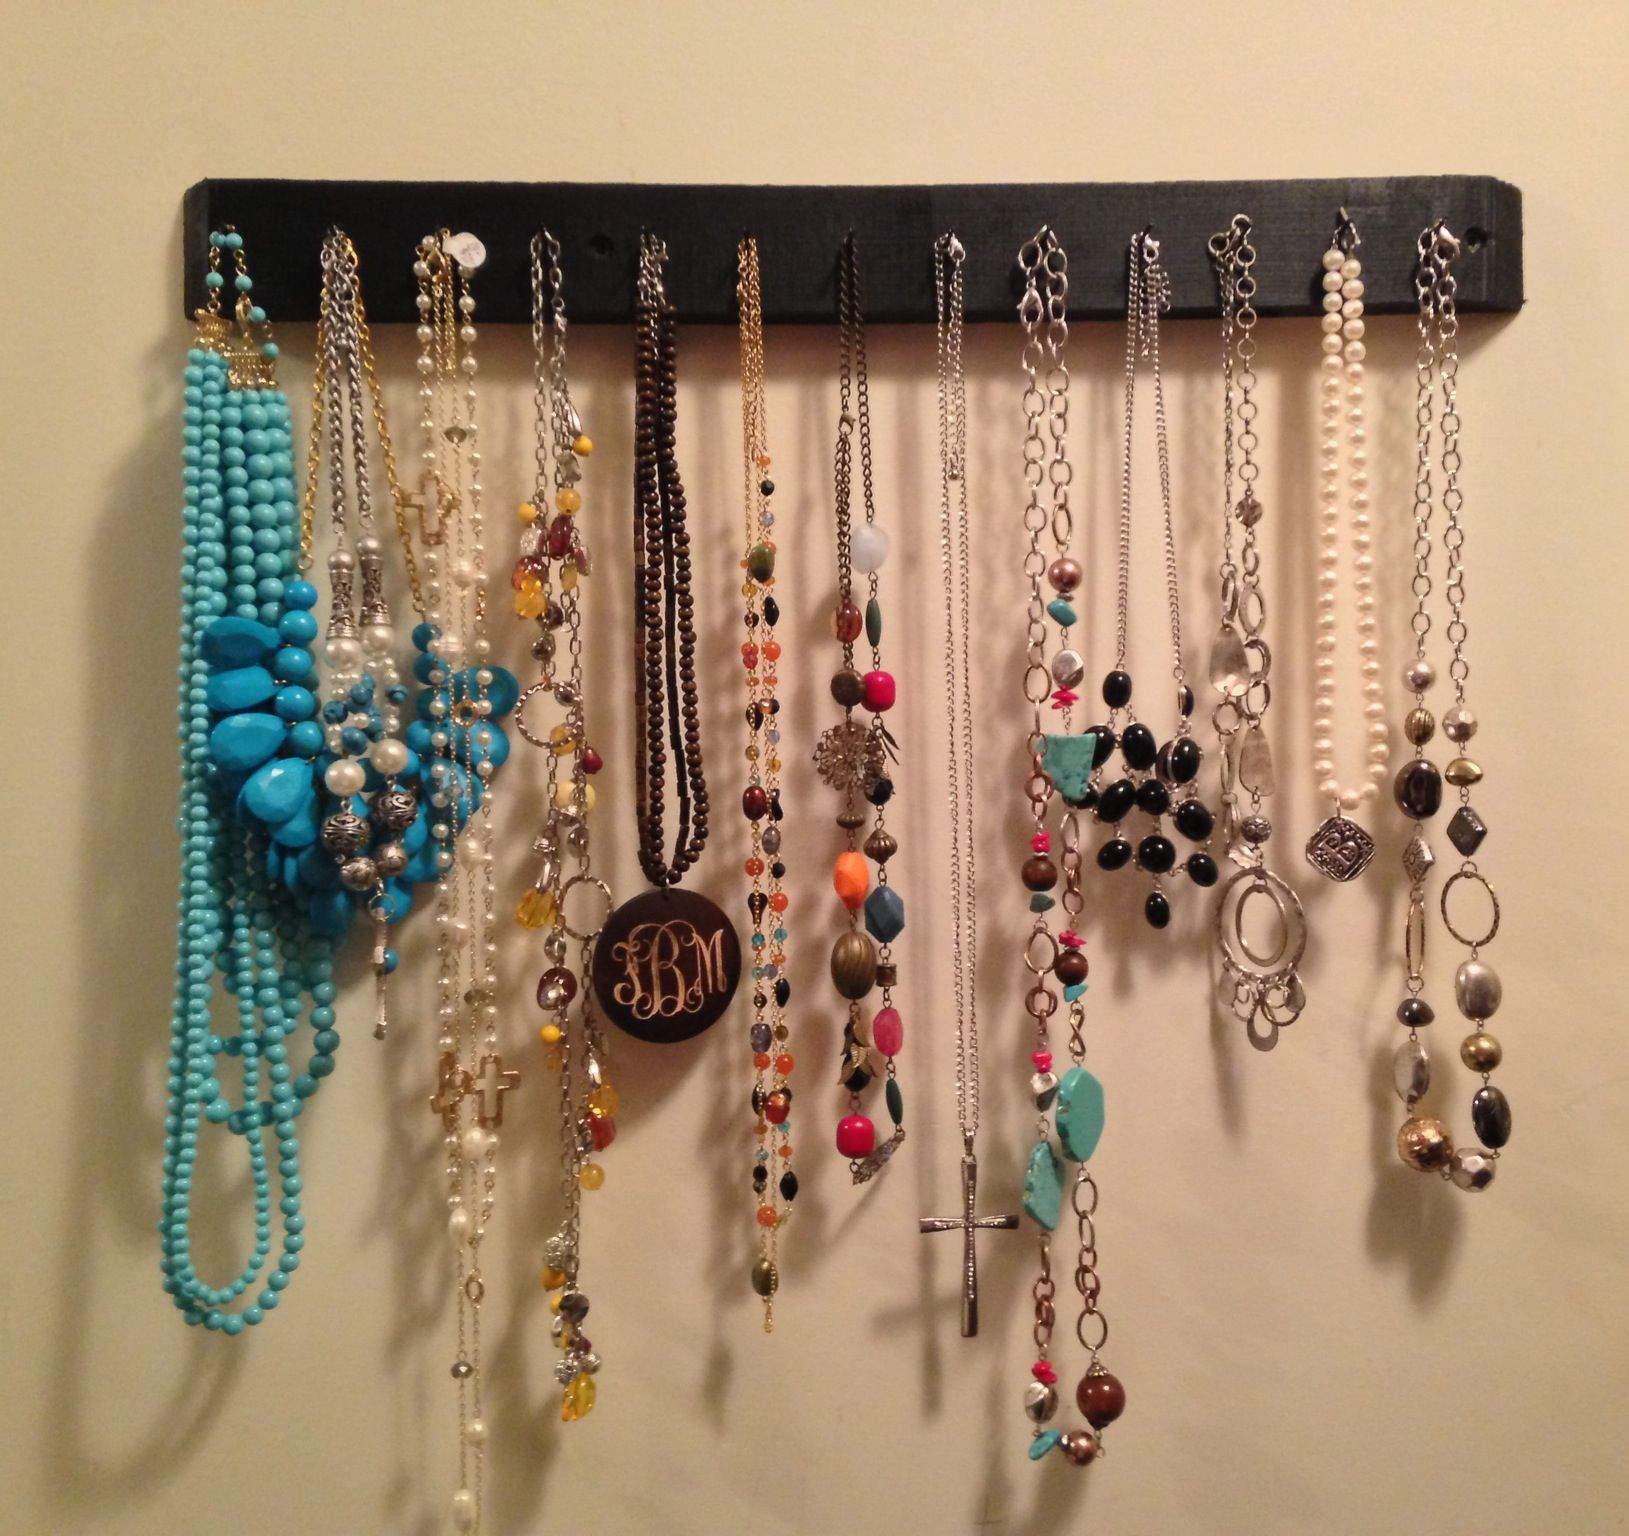 Jewelry Organizer Mark Made Me Love It